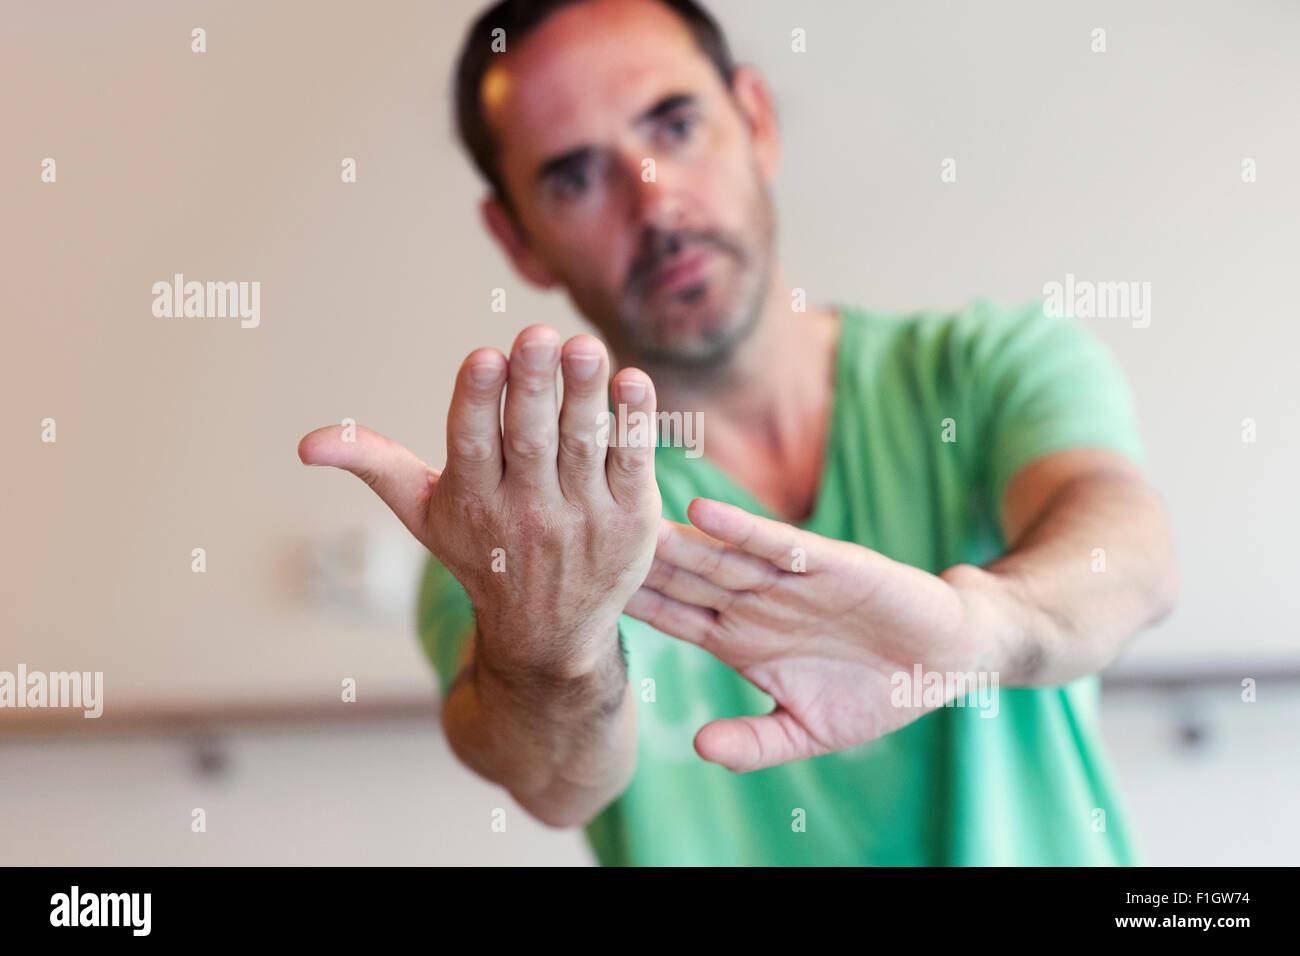 Man practicing t'ai chi - Stock Image